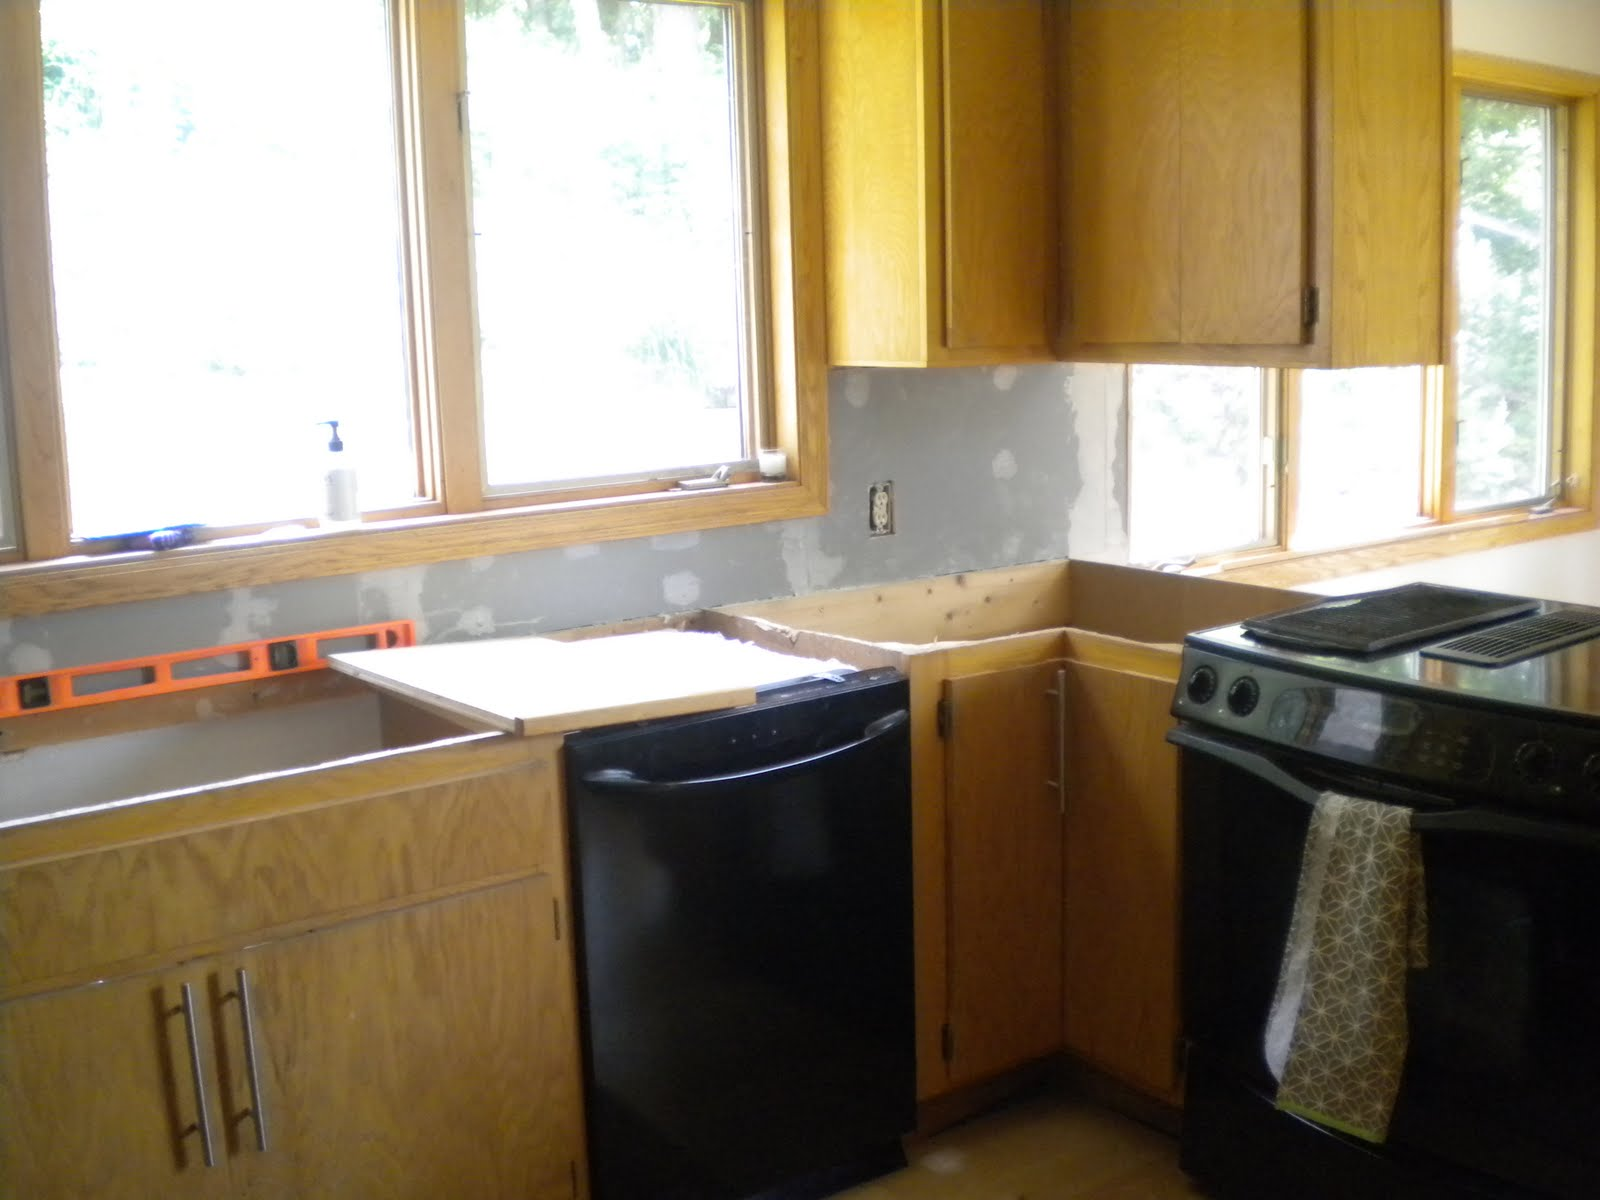 clean kitchen cabinets one project at a time diy 39 can you handle it 2230